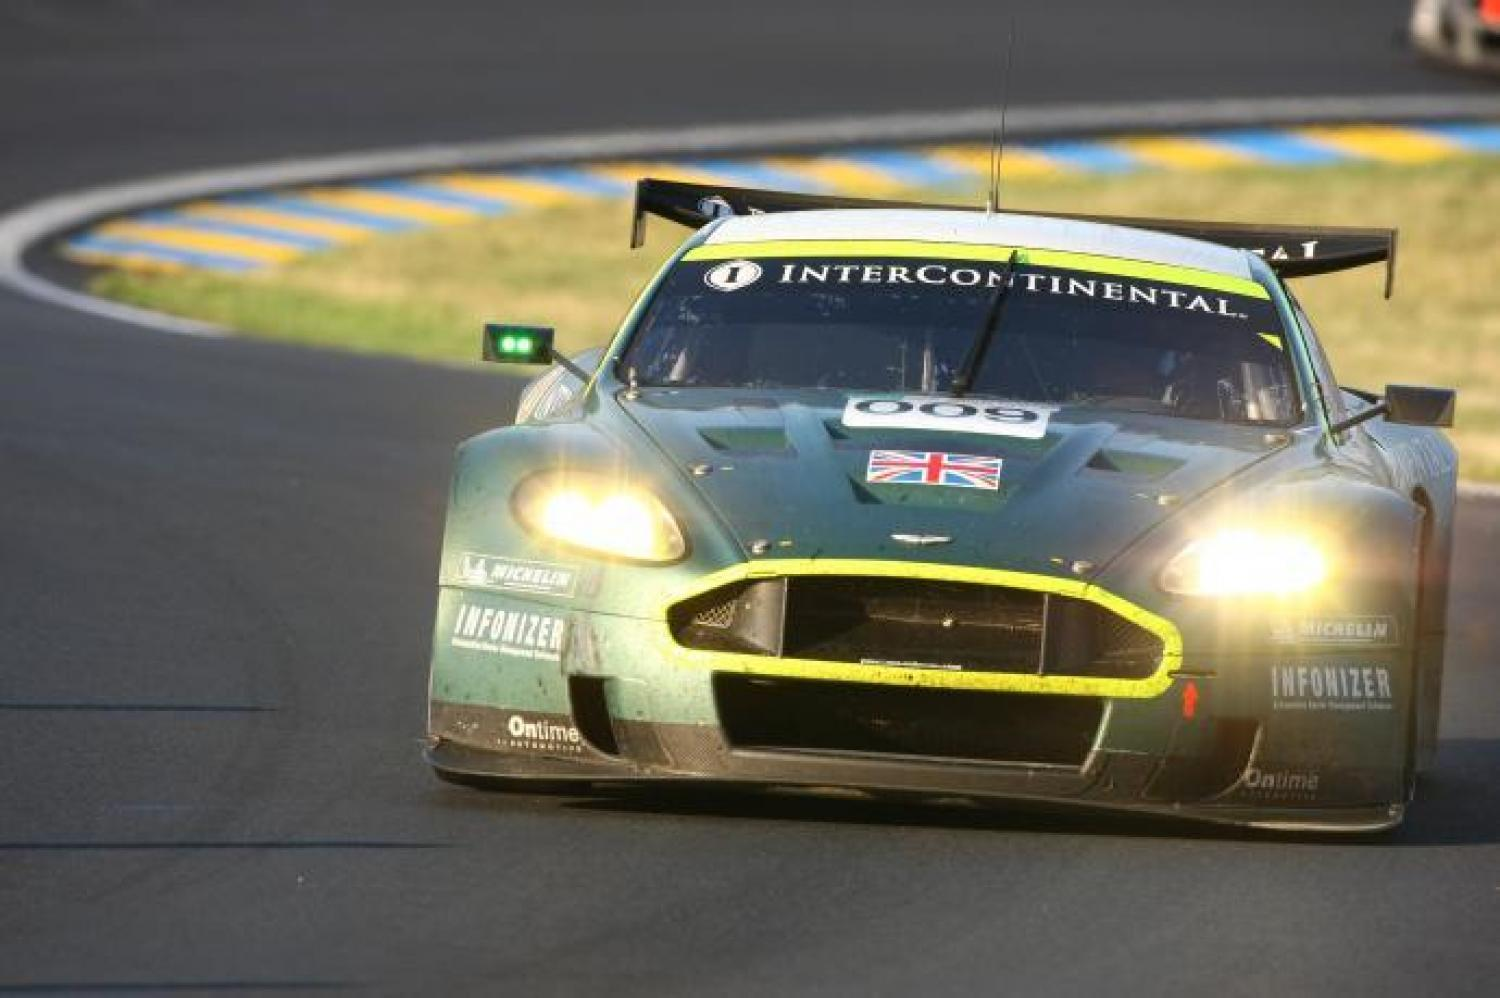 For Sale The Aston Martin Dbr9 Class Winner At Le Mans In 2007 24h Lemans Com